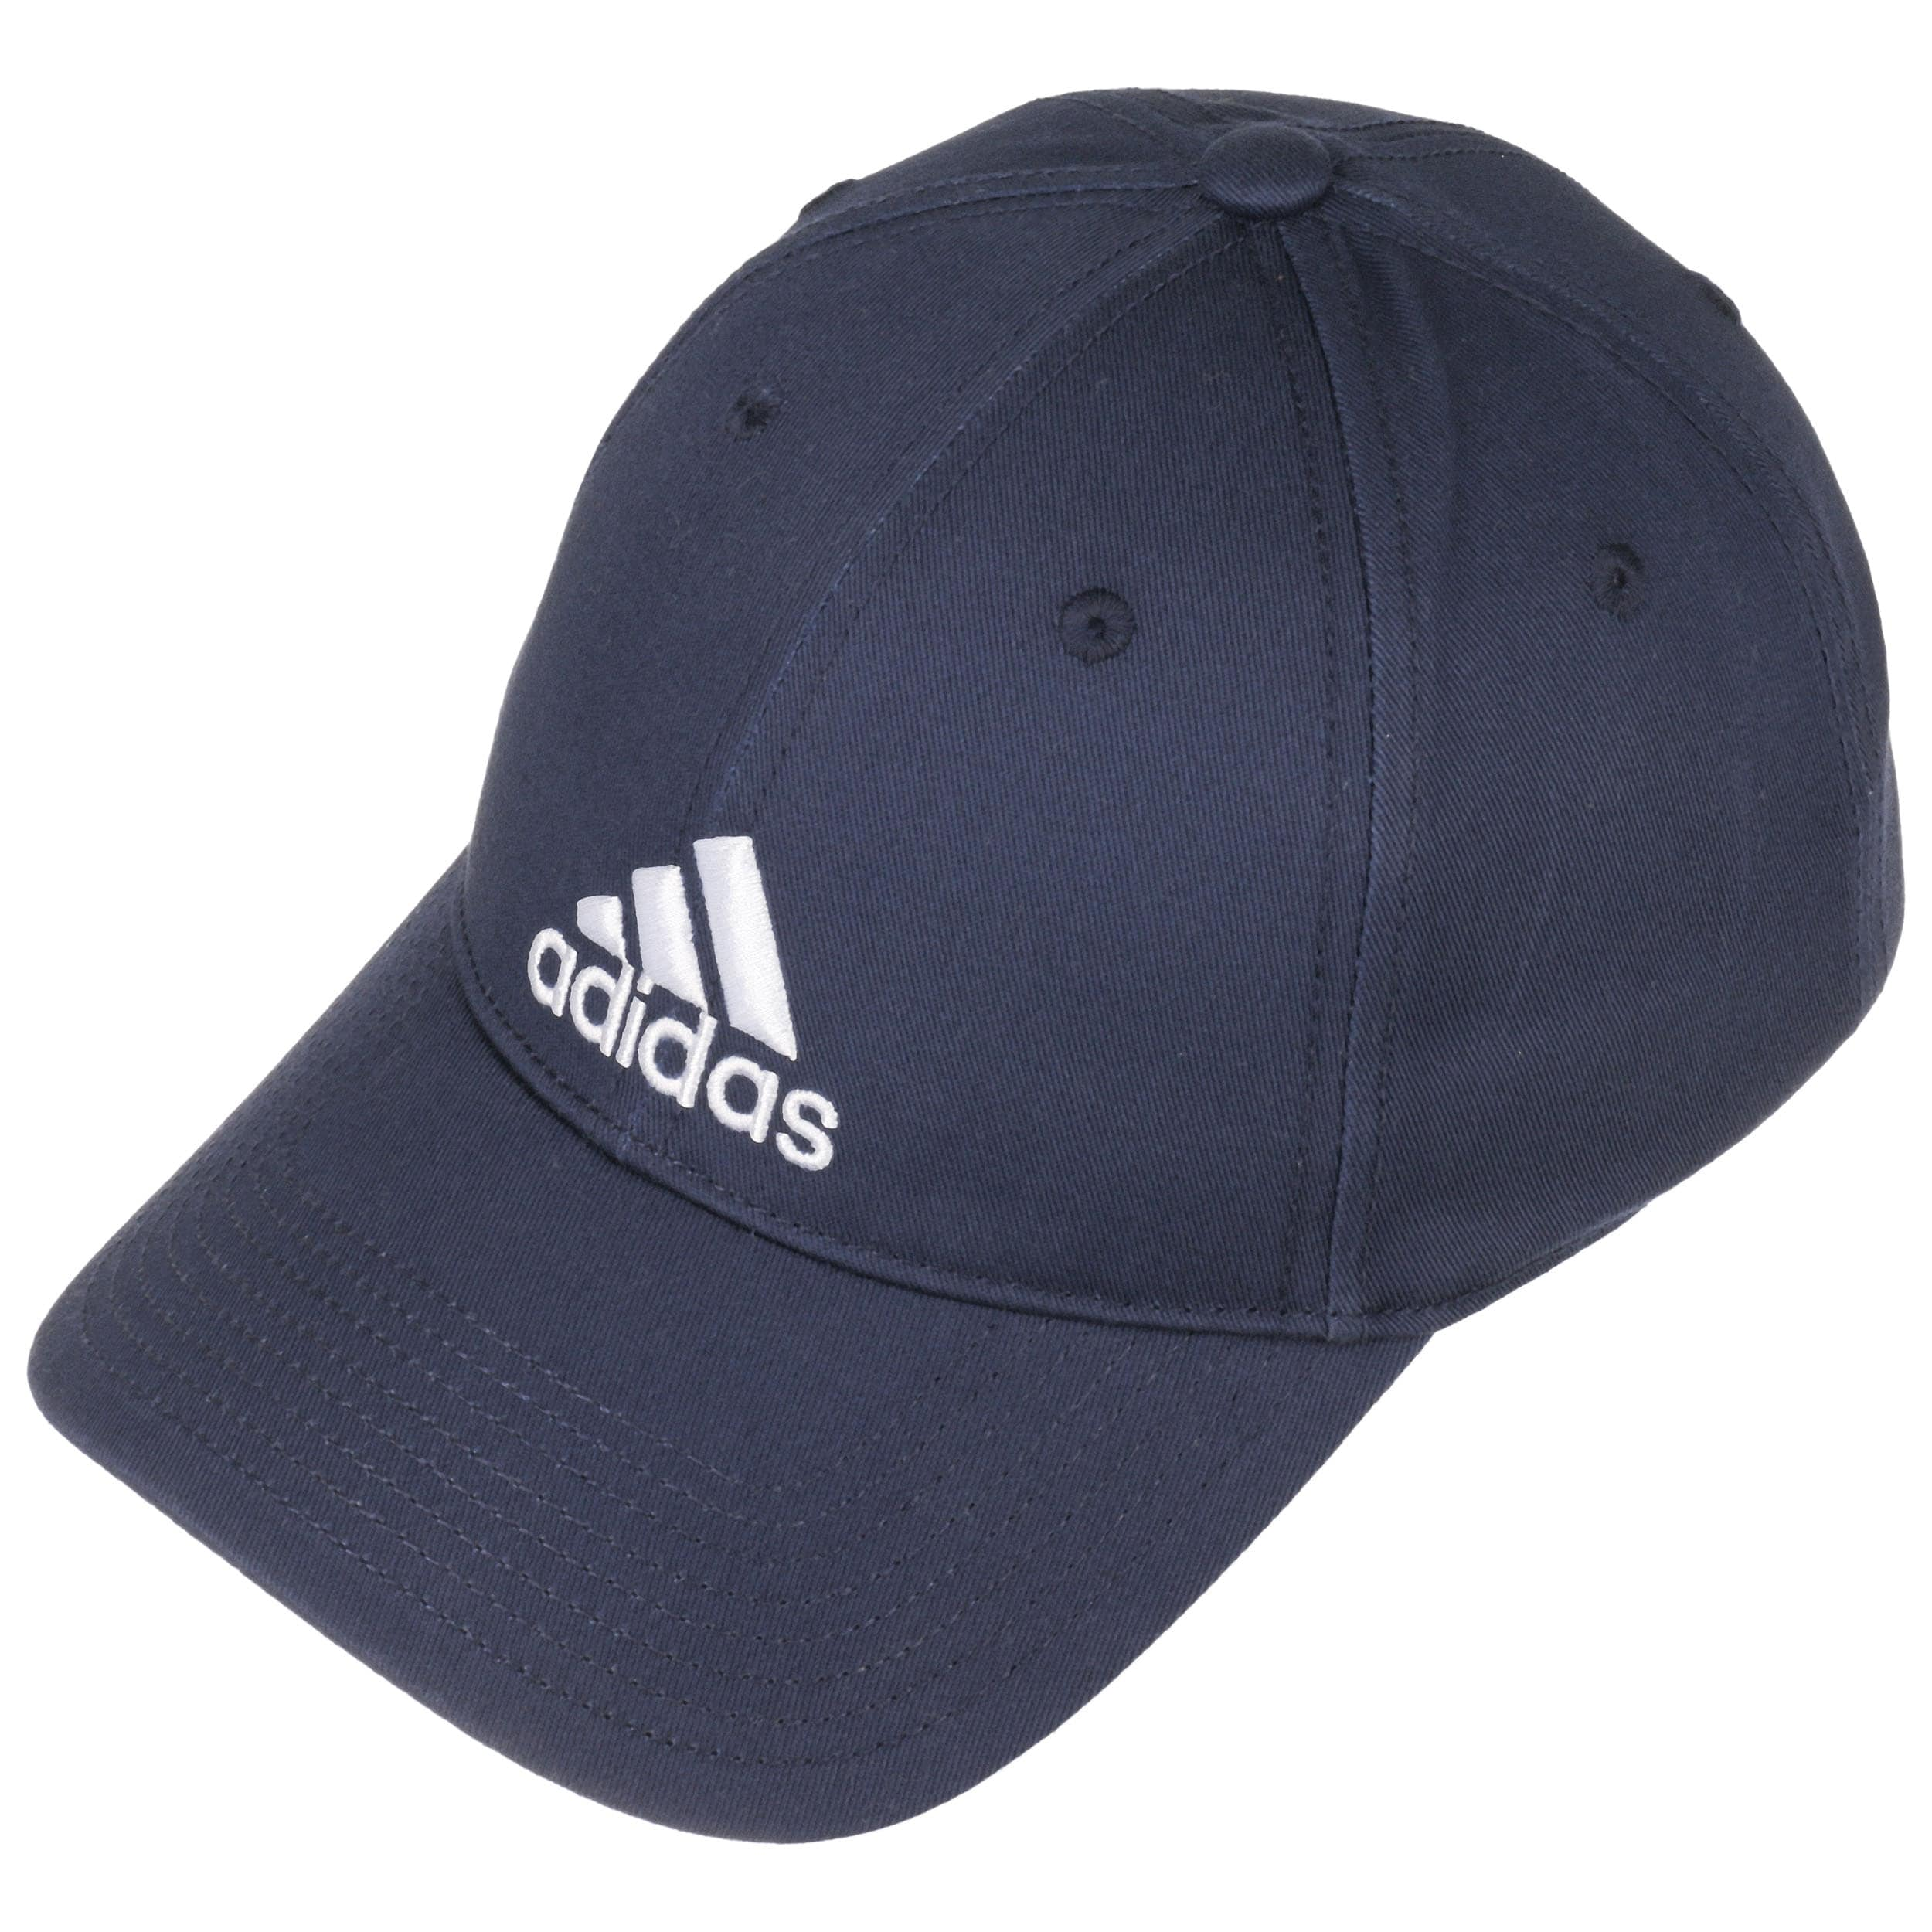 6P Classic Cotton Snapback Pet by adidas